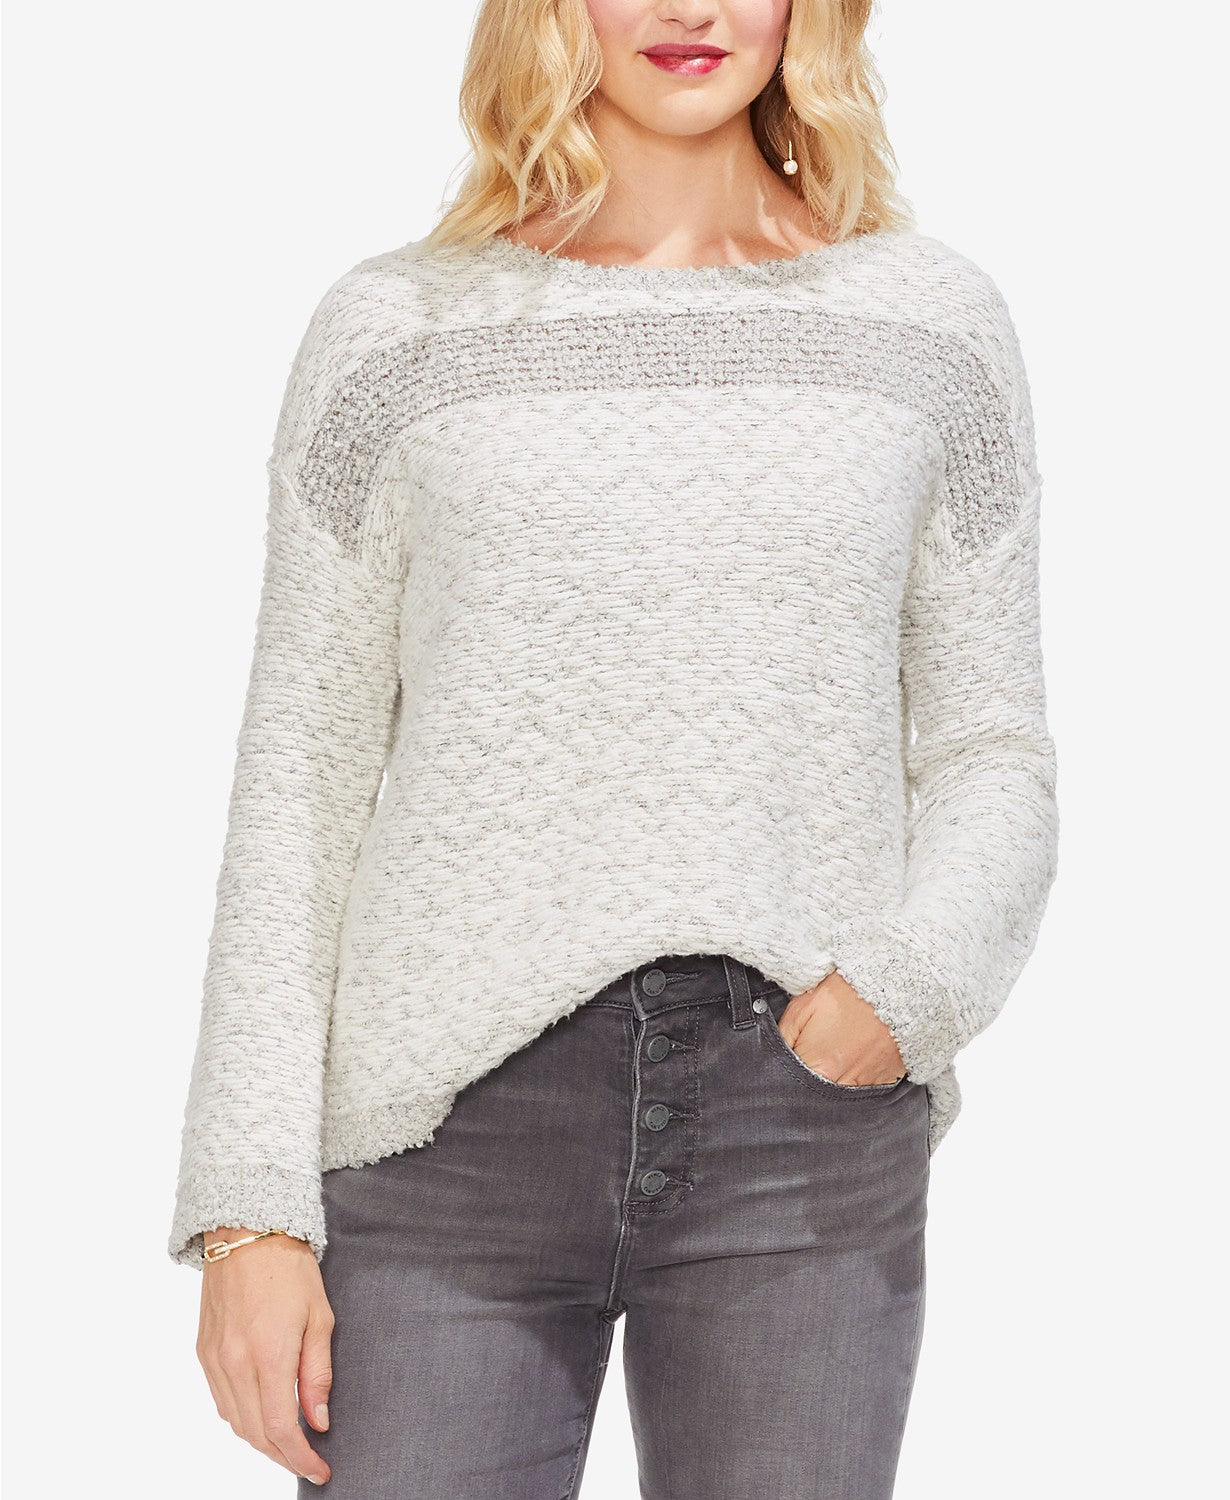 Vince Camuto Womens Long Sleeves Pattern Sweater